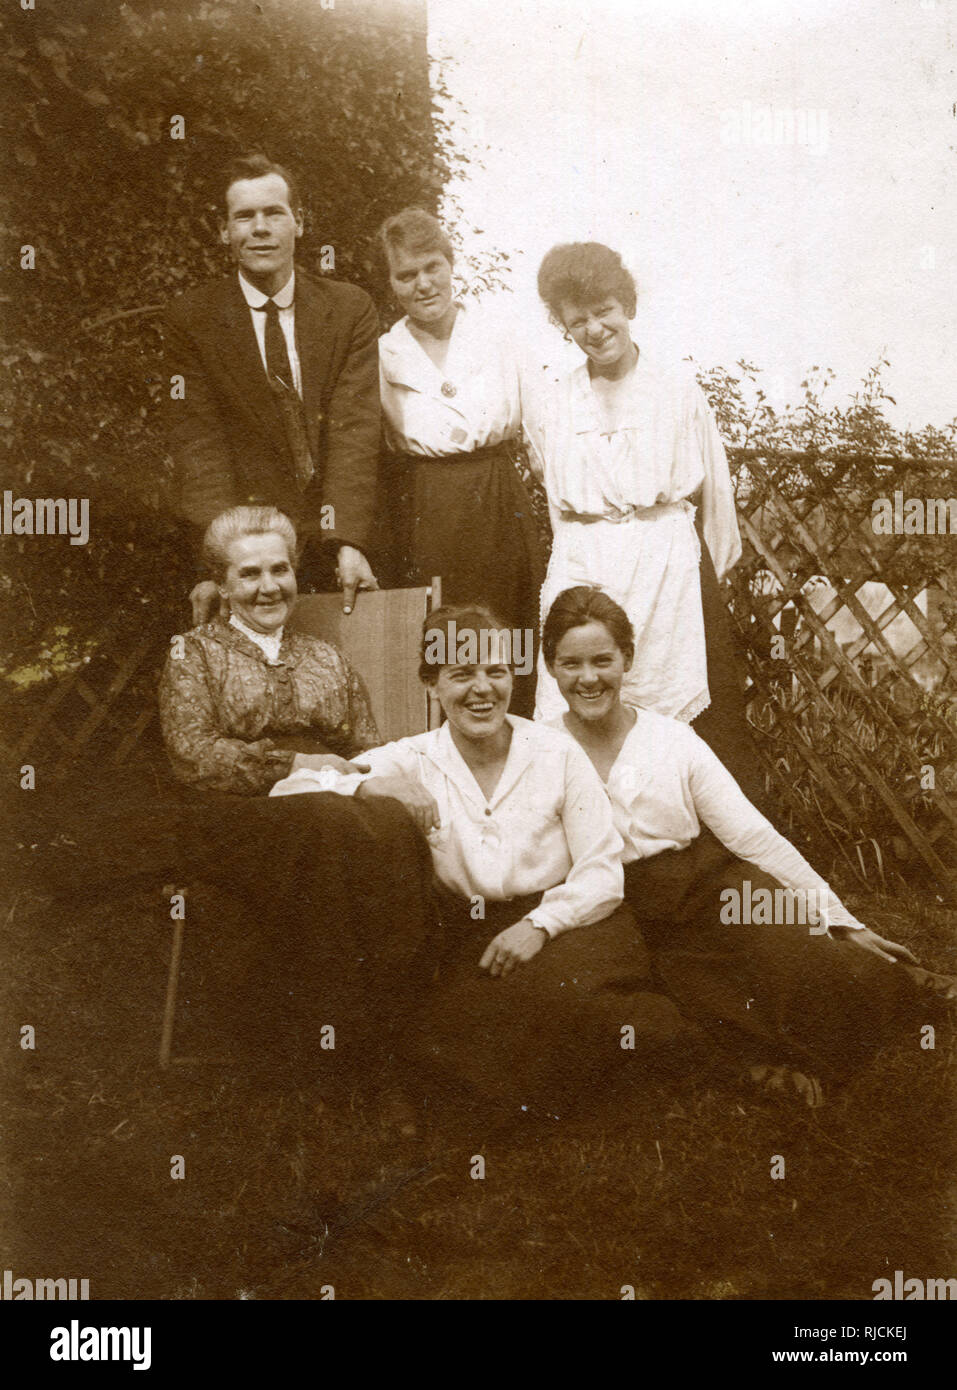 Group photo, family of six in a garden. Stock Photo